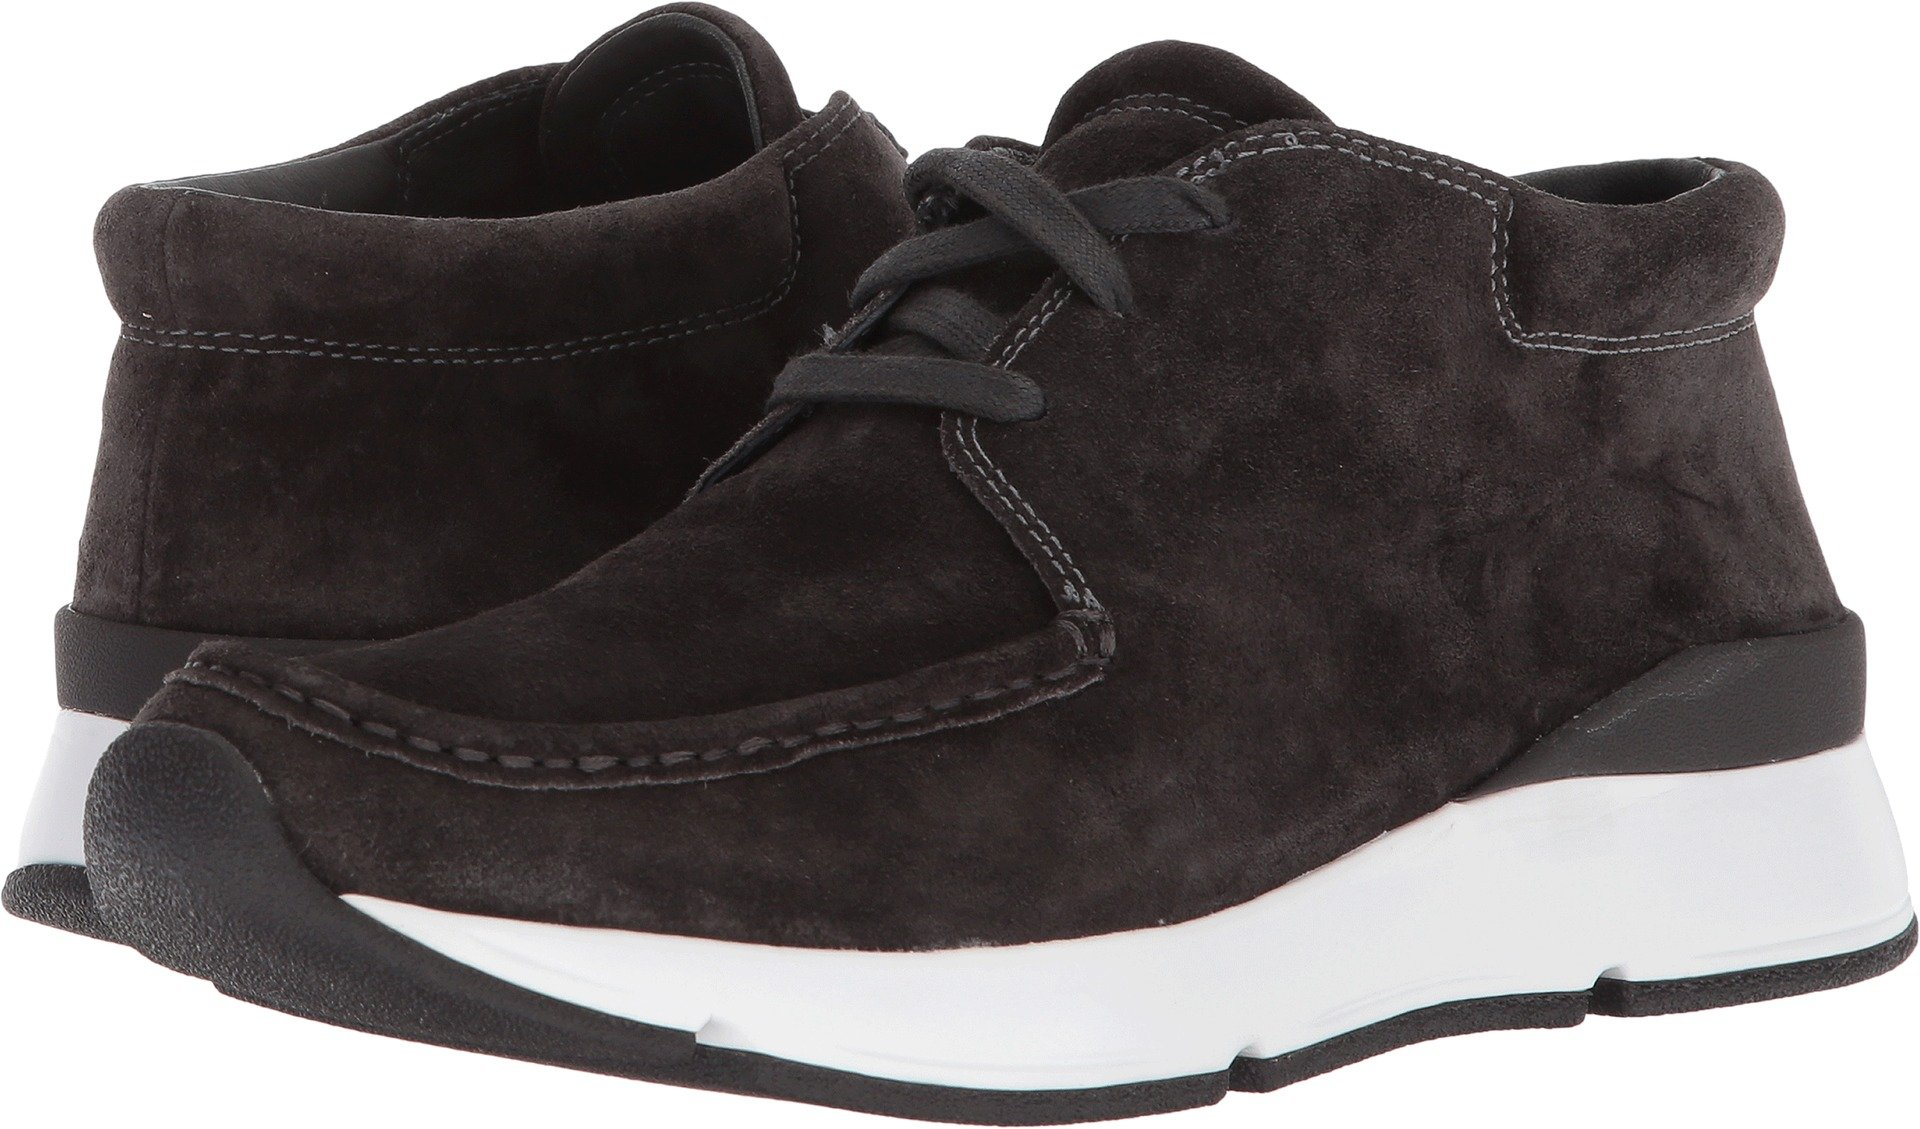 Vince Women's Toronto, Pewter Suede, 9 M US